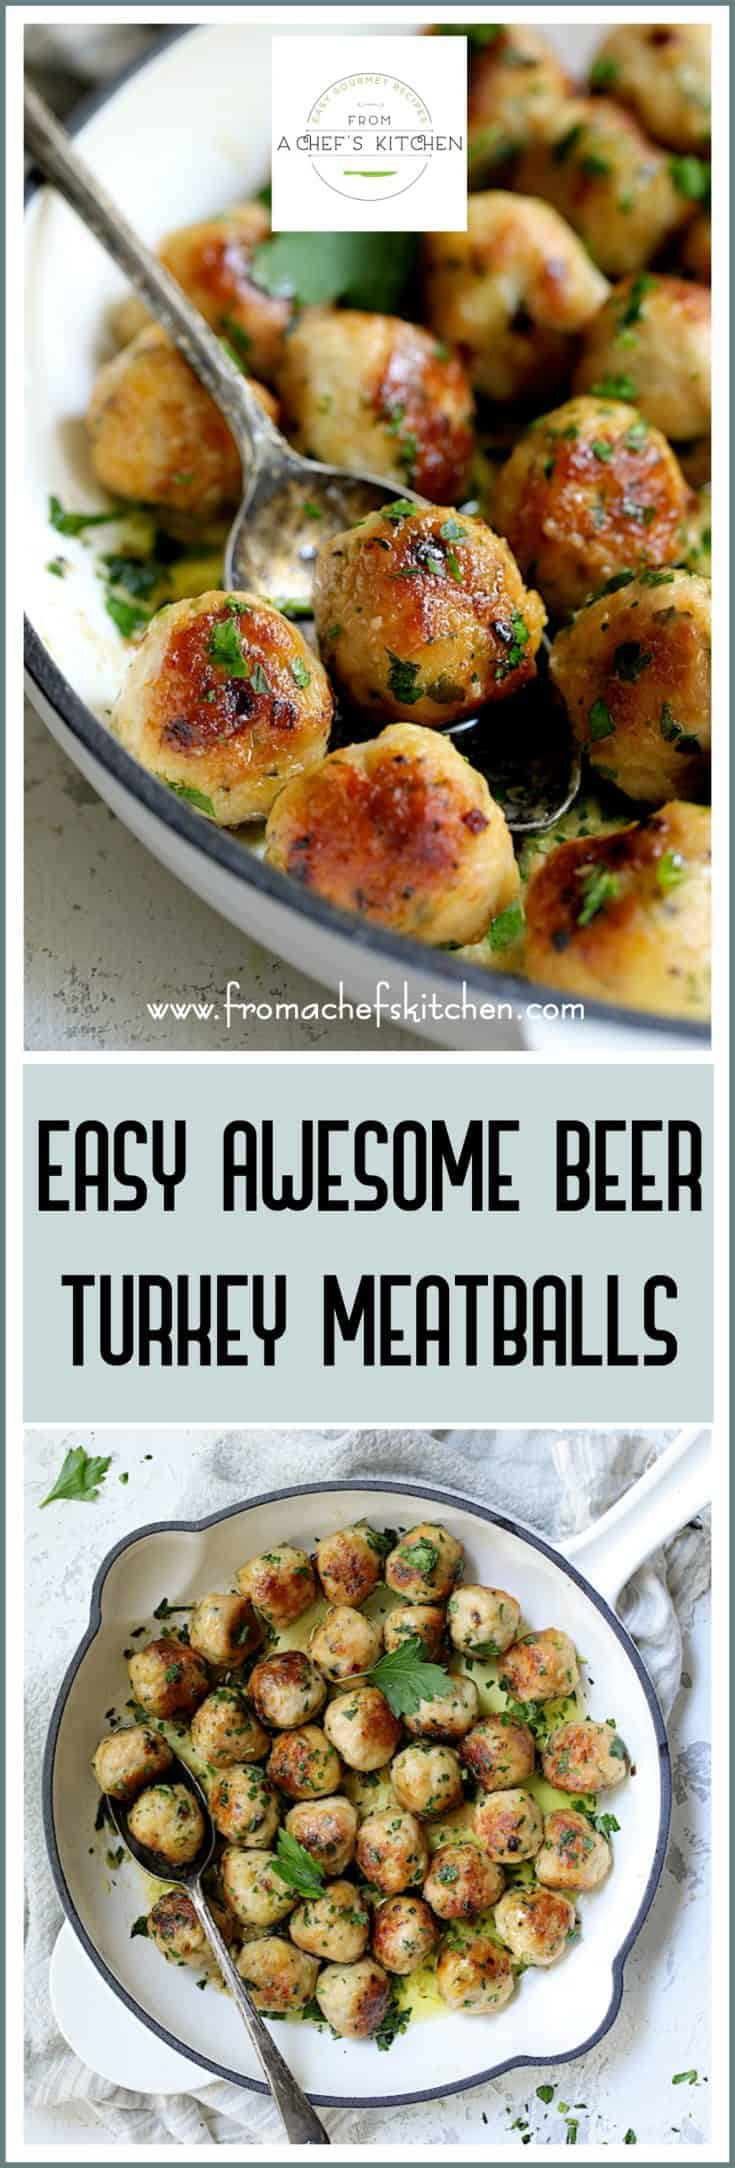 Easy Awesome Beer Turkey Meatballs are easy, comforting and take little time to prepare. The beer adds a lively flavor and a hint of butter stirred in at the end creates a luscious, velvety sauce! #cookingwithbeer #beerturkeymeatballs #turkeymeatballs #meatballs #gamedayrecipes #easydinner